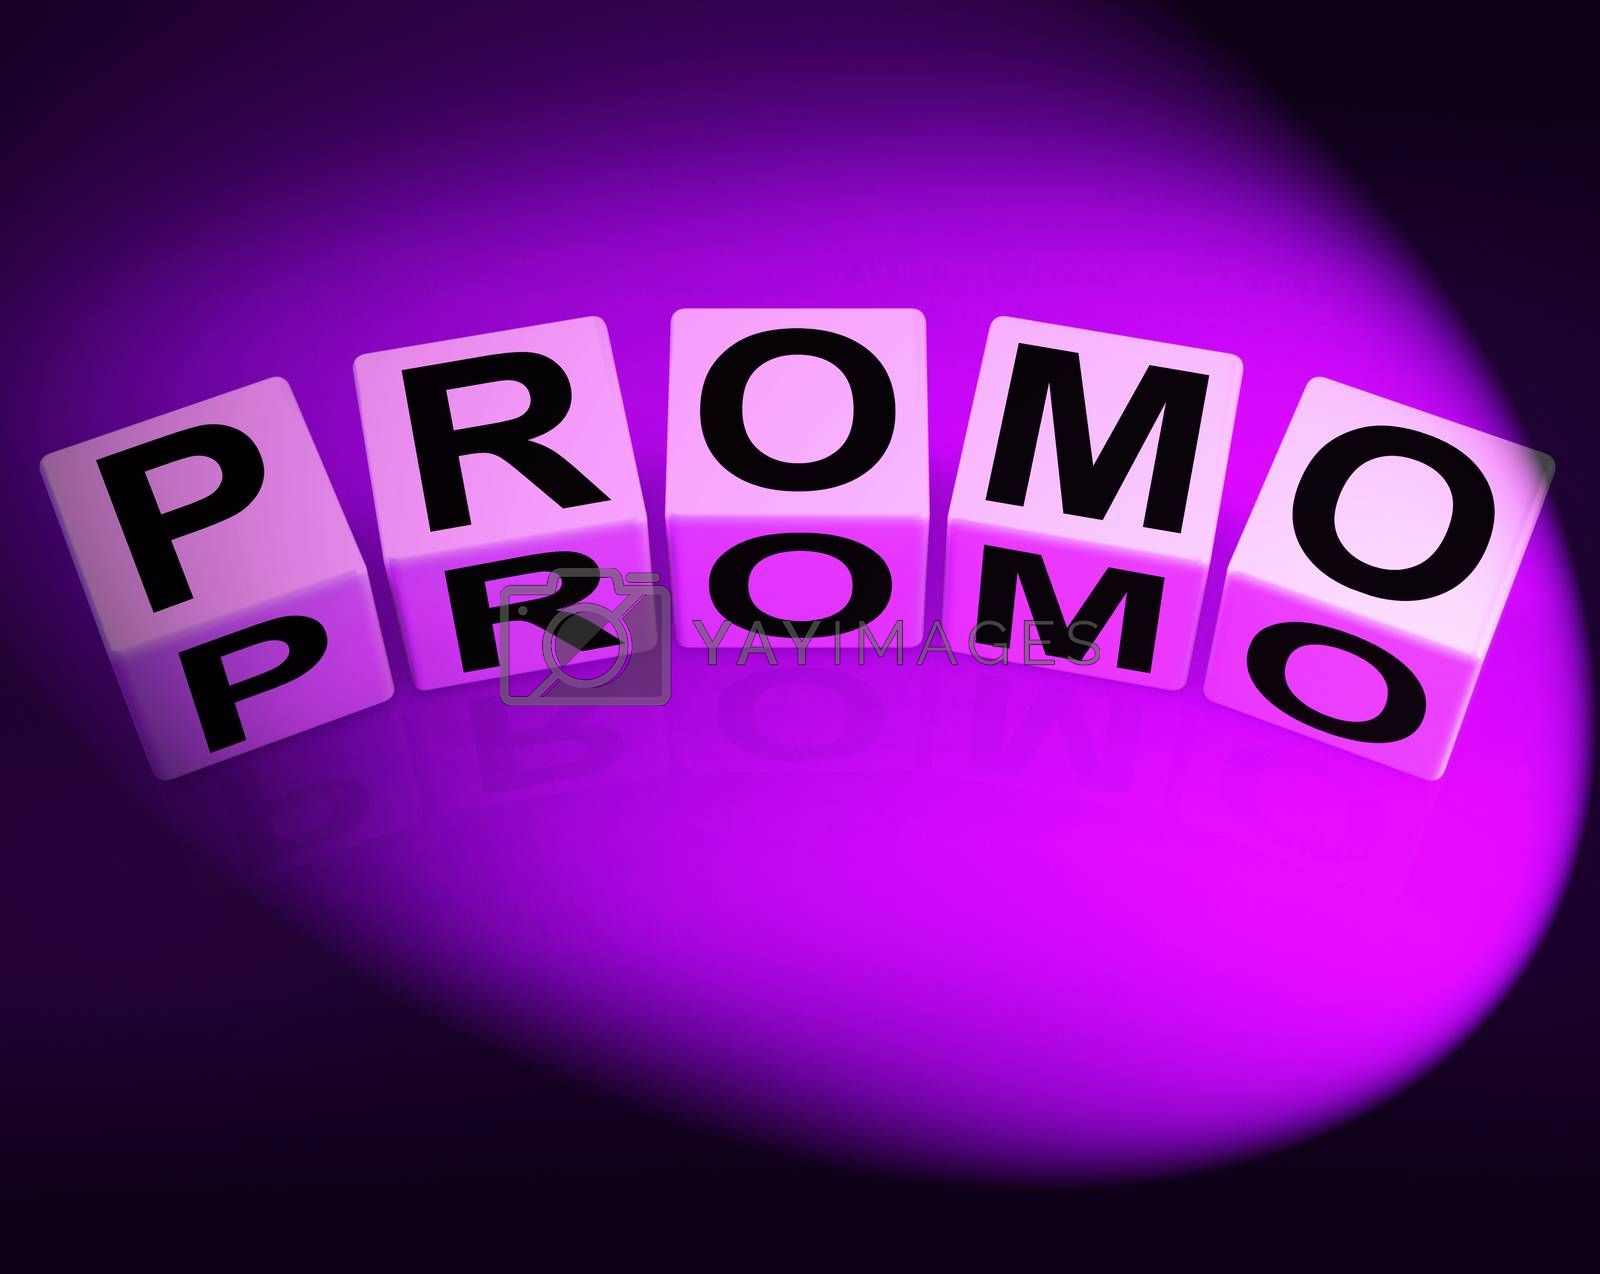 Promo Dice Show Advertisement and Broadcasting Promotions by stuartmiles